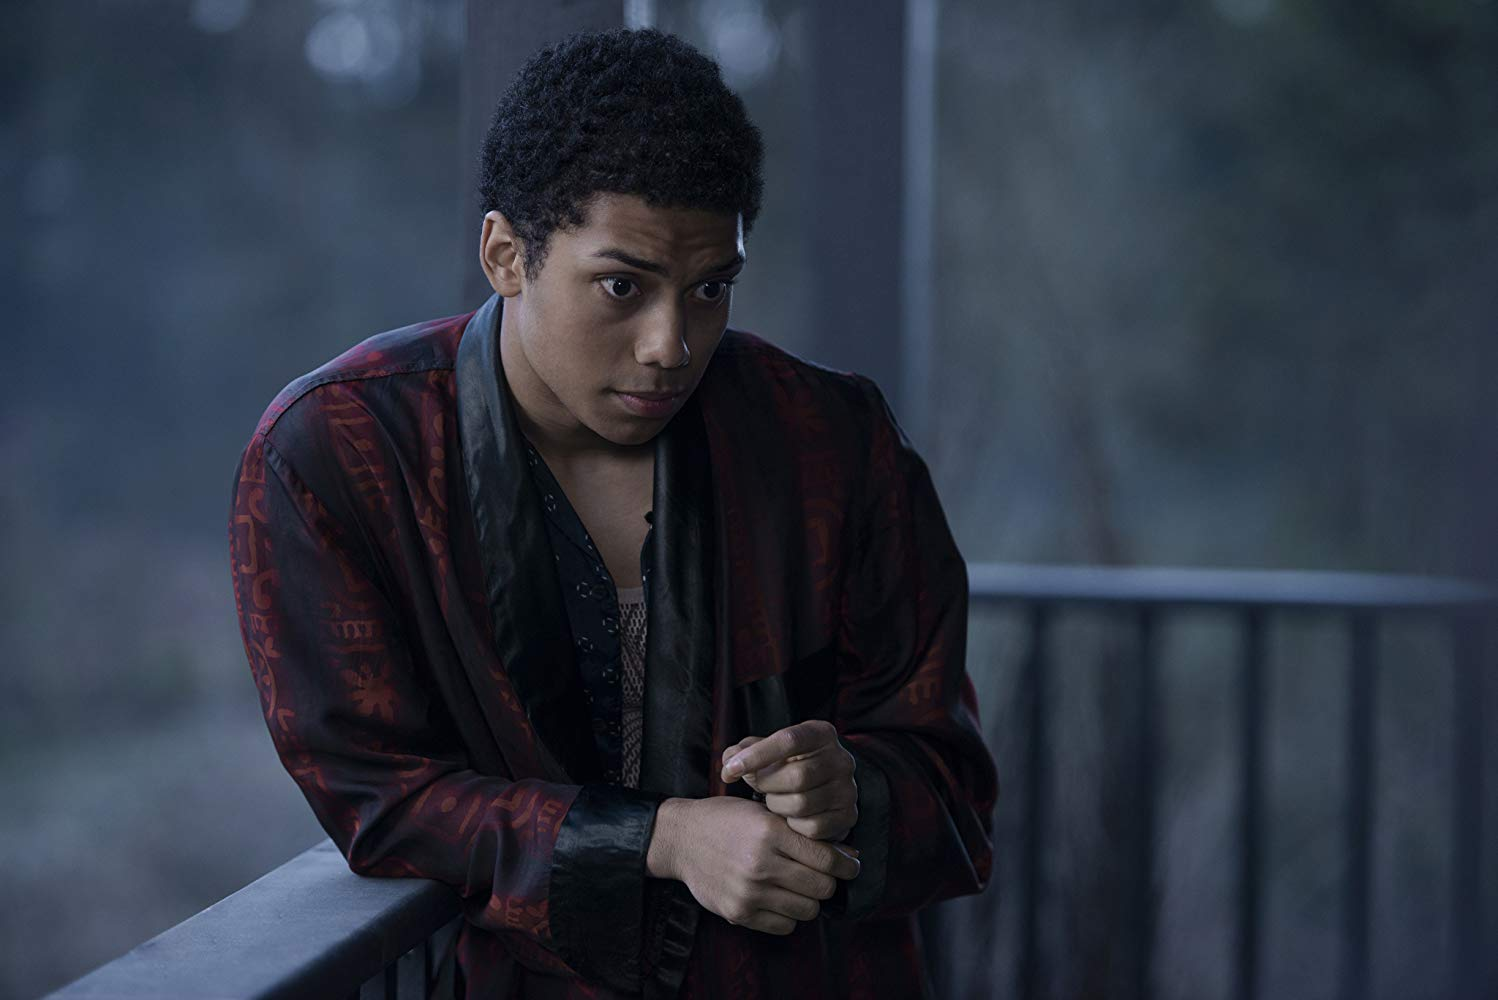 Chance Perdomo Identity School of Acting Alumni